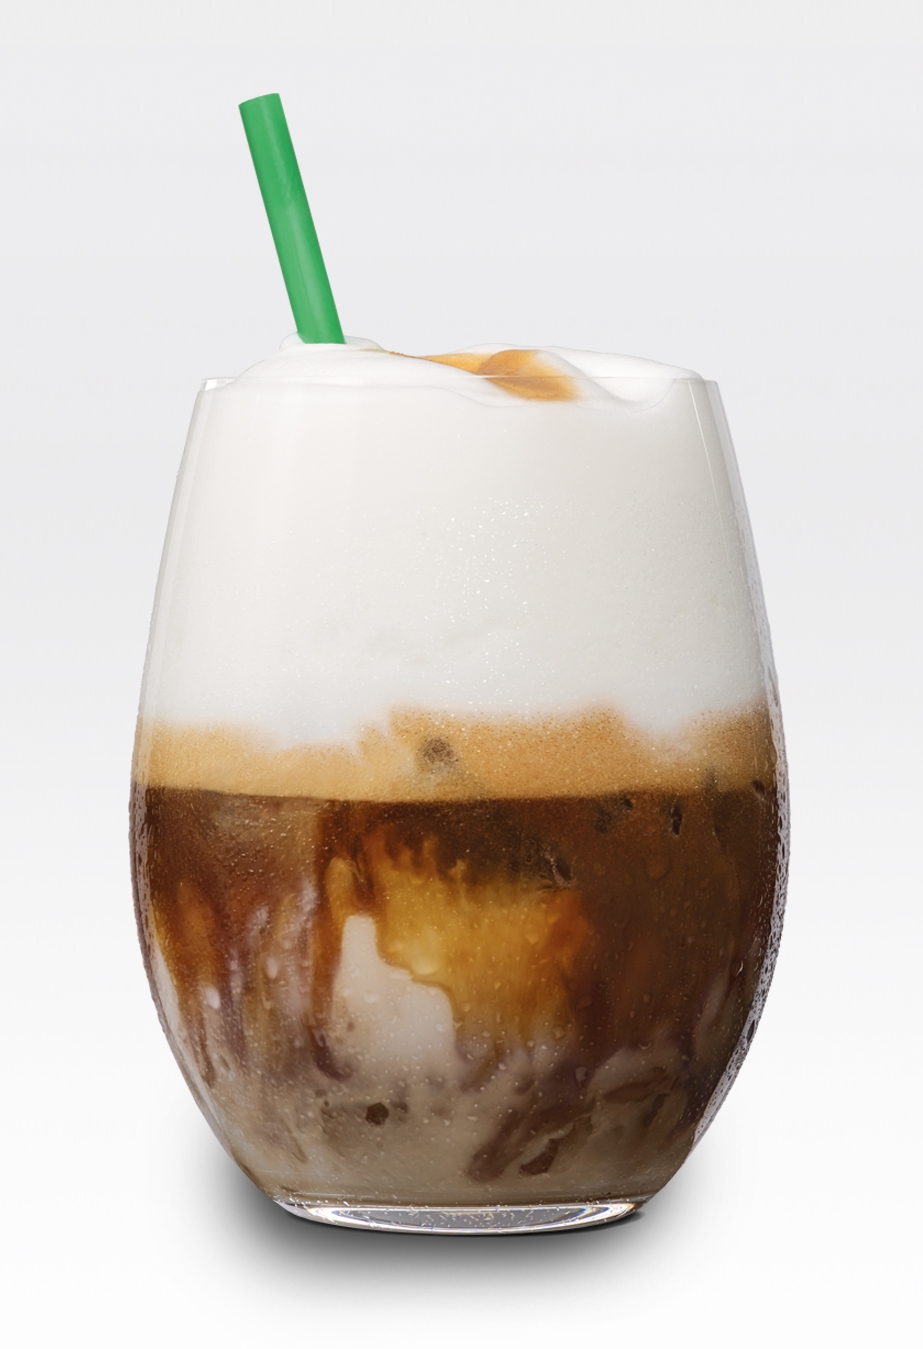 1. Cold Foam Cappuccino - (from Starbucks)